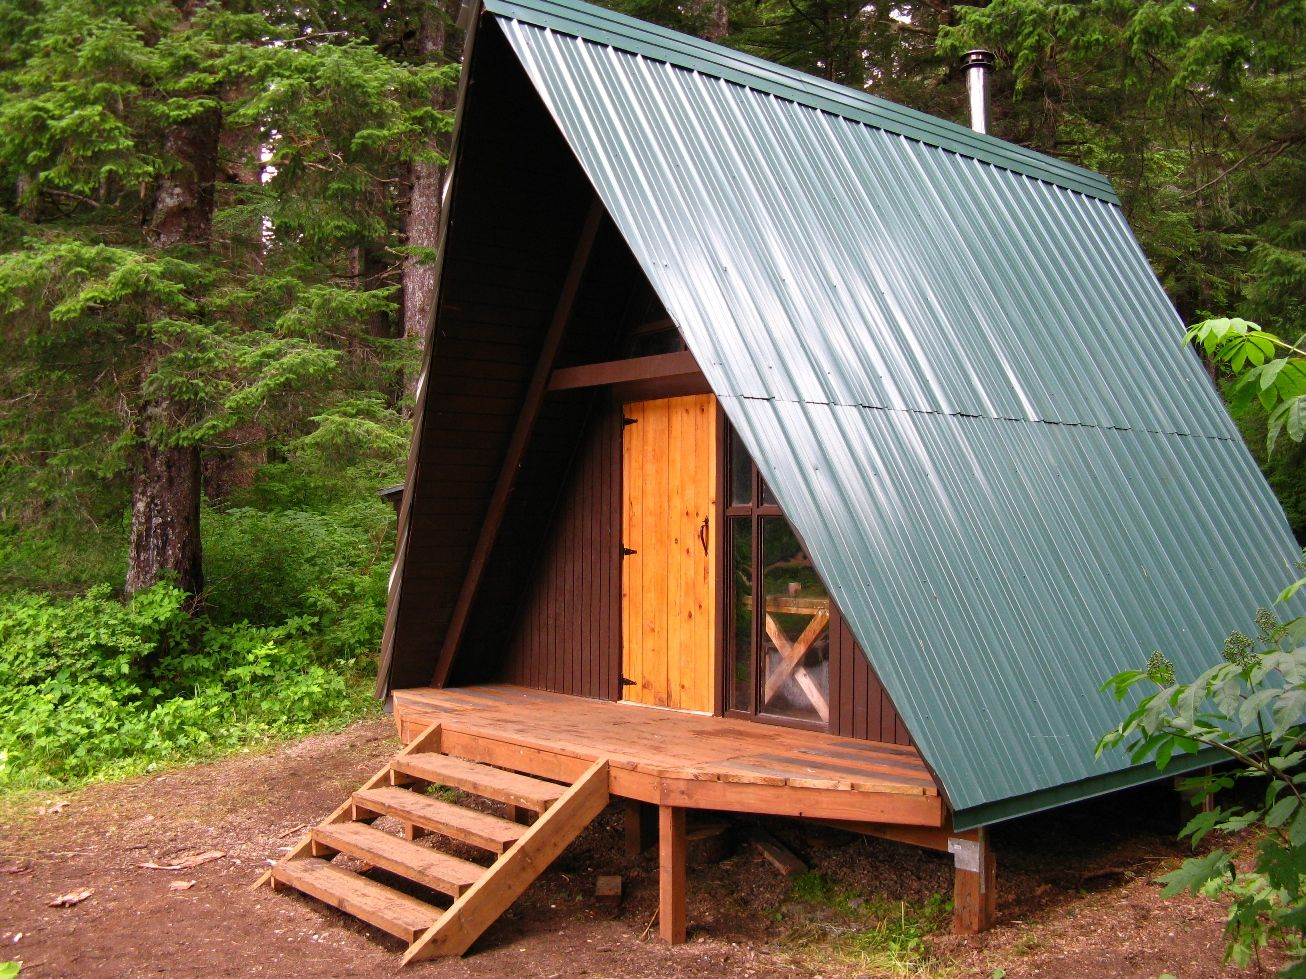 Small cabin option land ideas pinterest cabin for Tiny hunting cabin